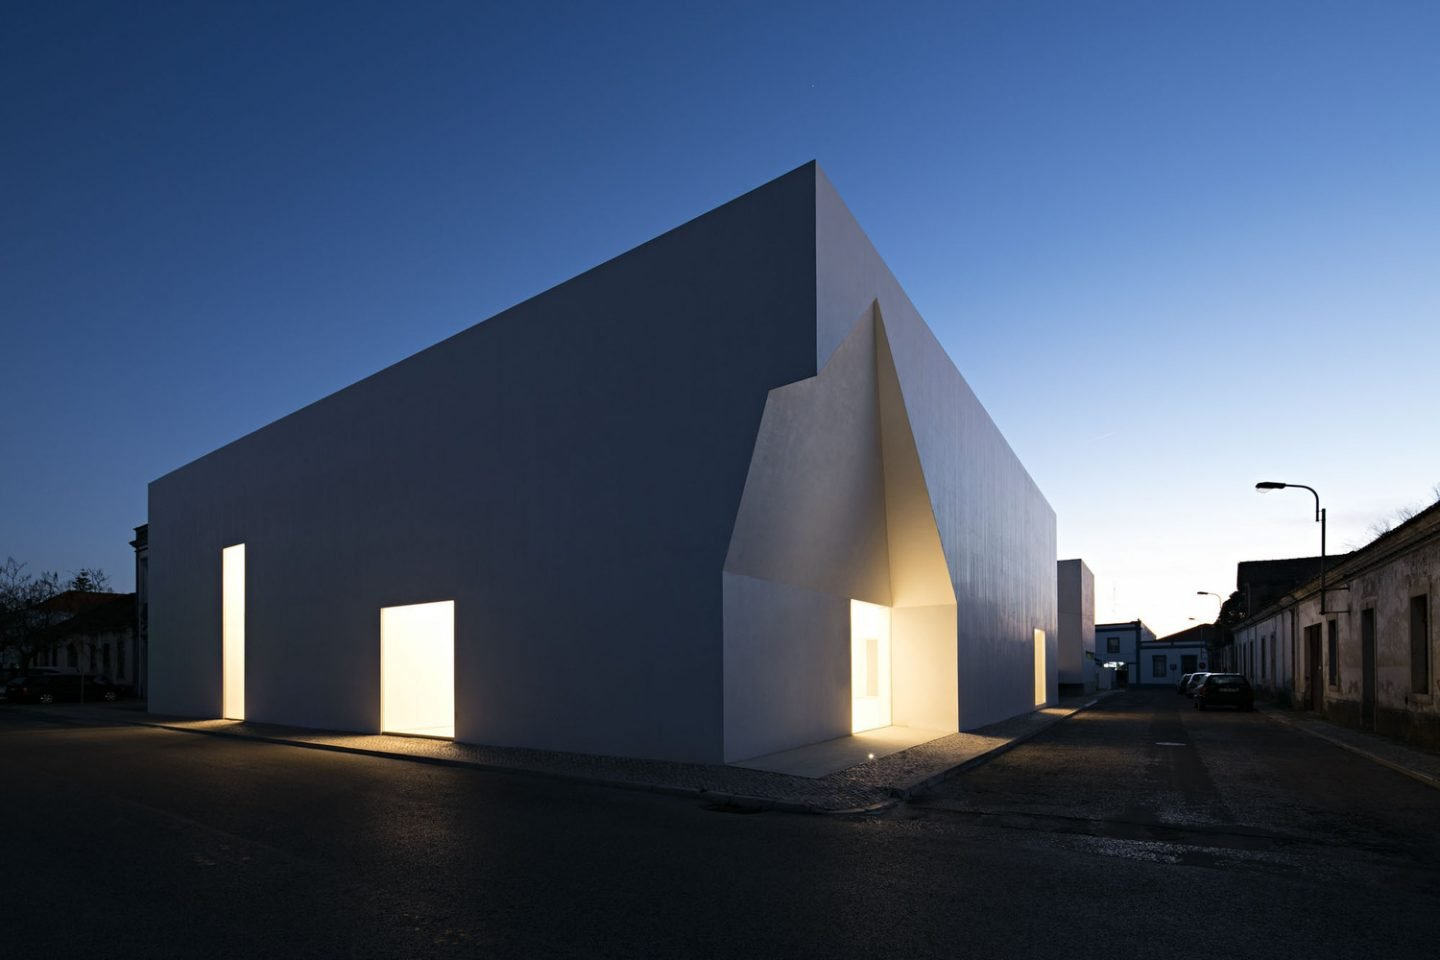 iGNANT_Architecture_Aires_Mateus_Monolithic_Meeting_Center_Grandola_0100